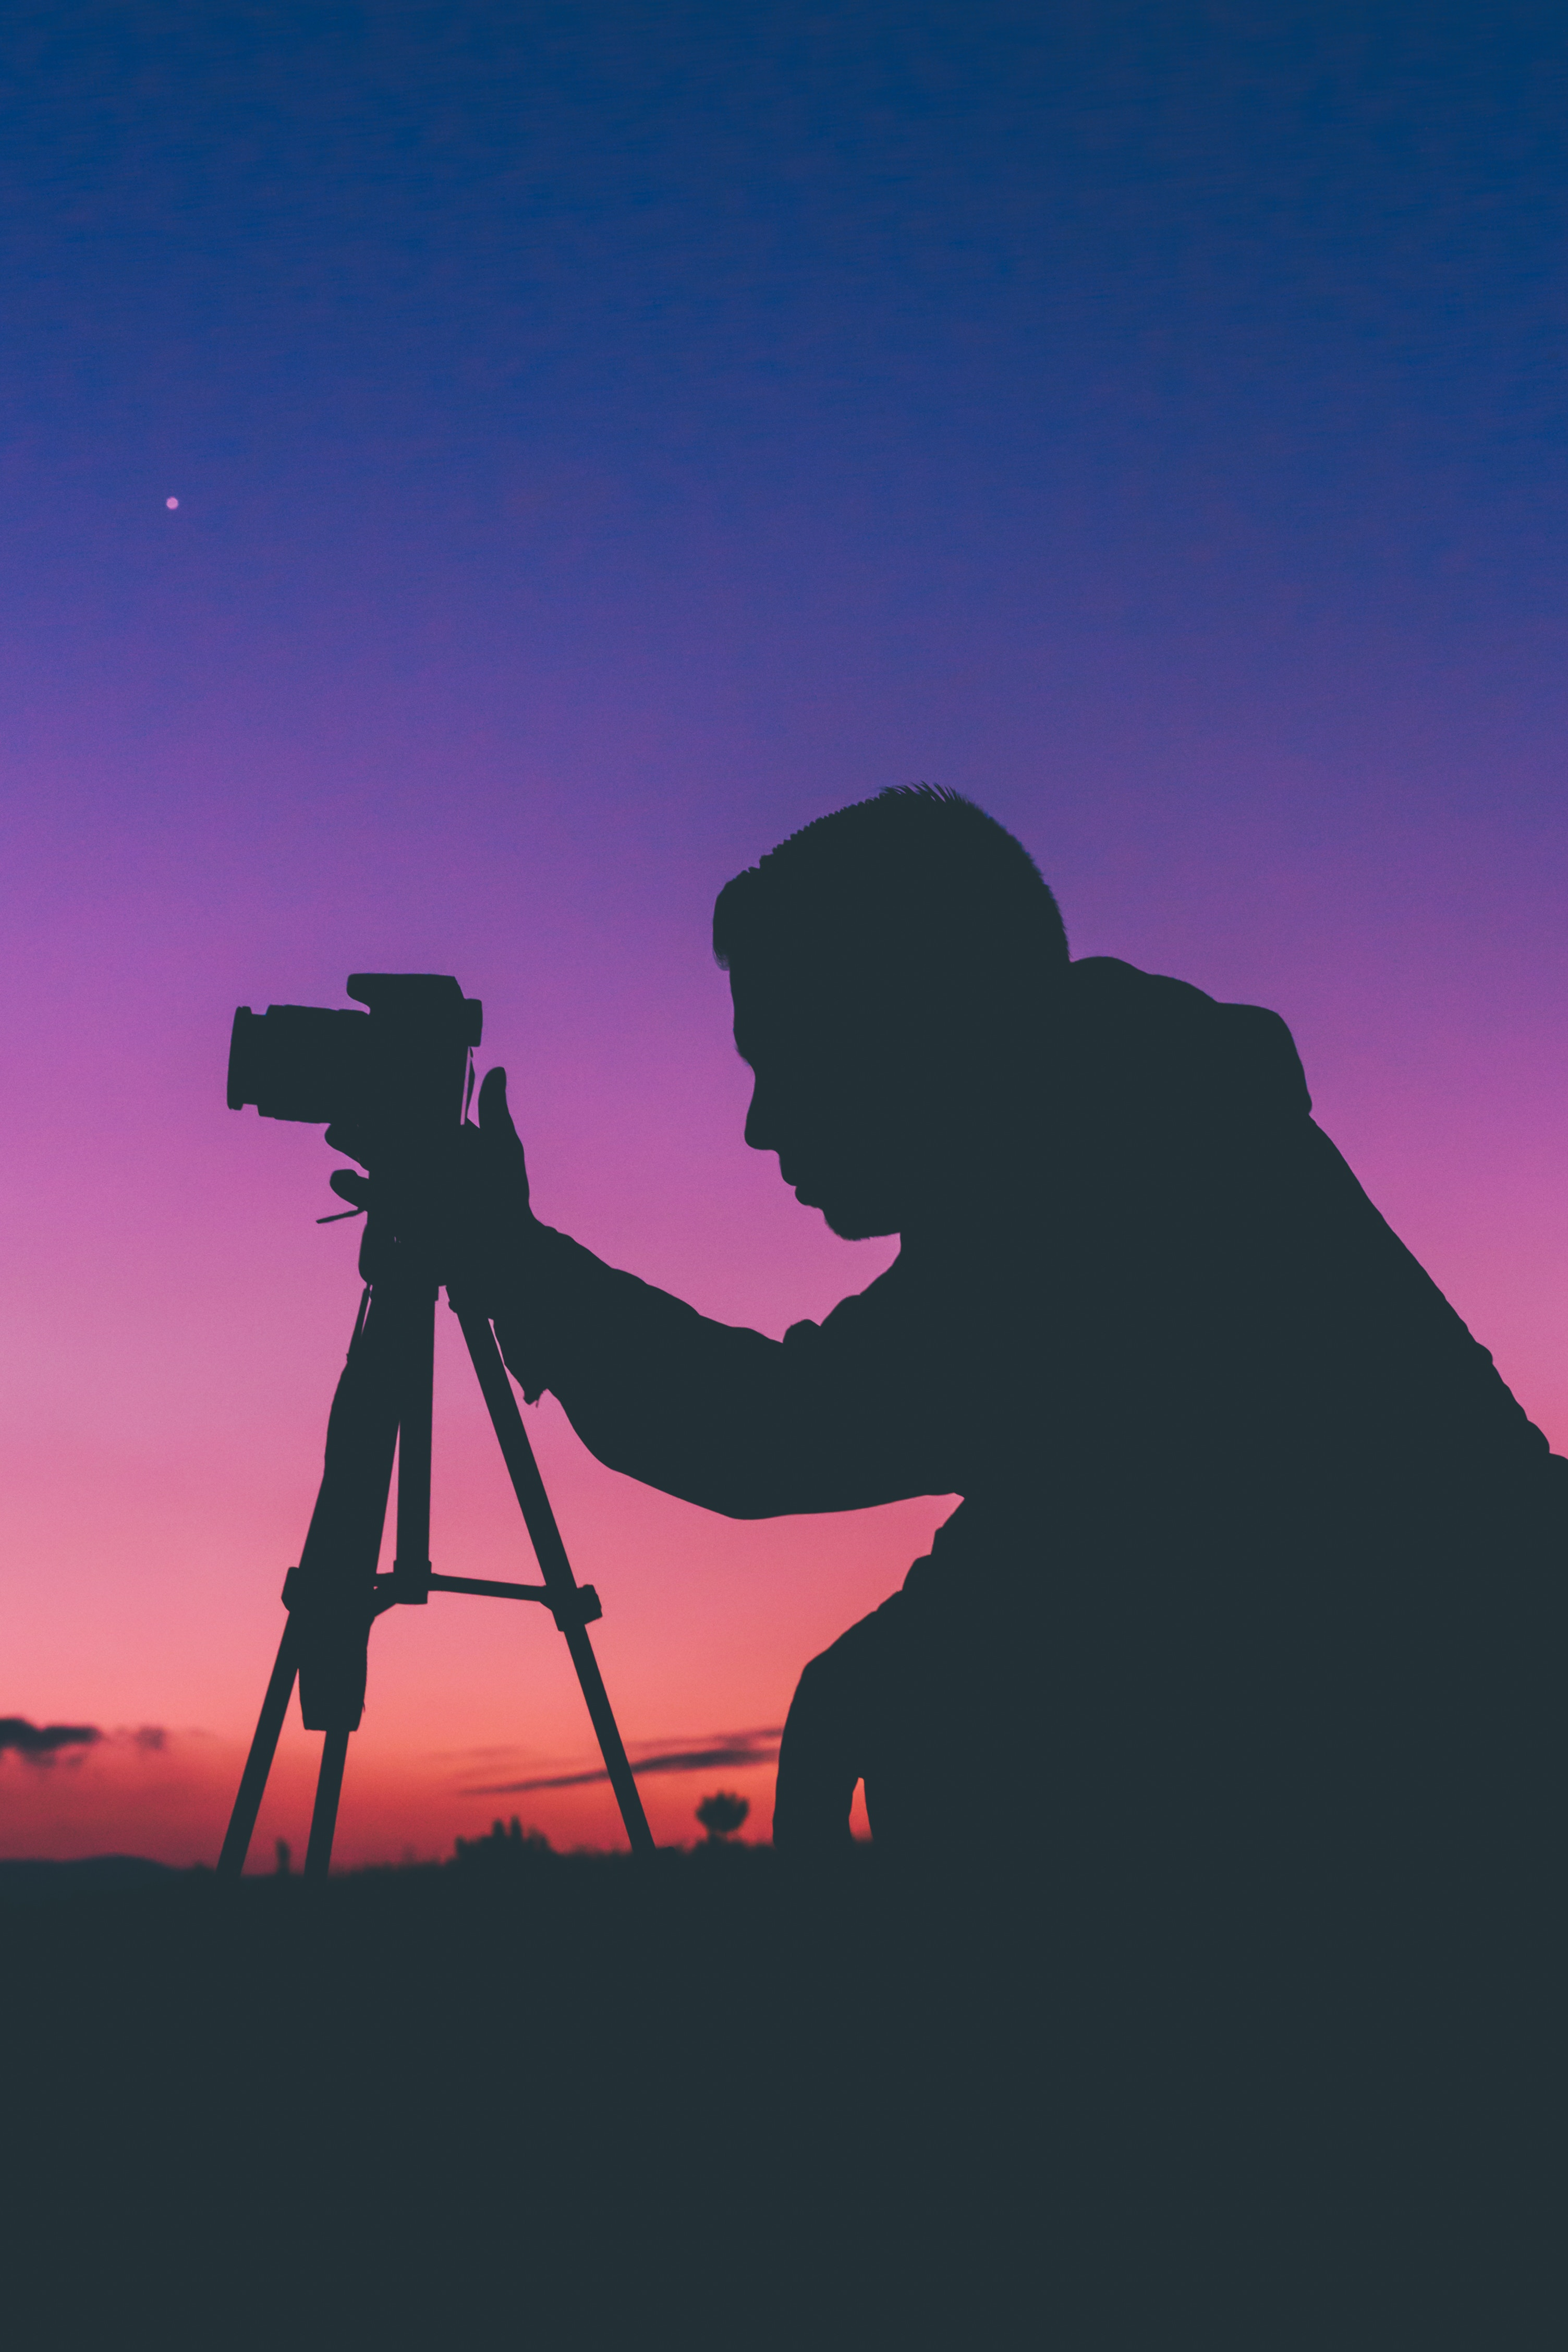 55827 download wallpaper Sunset, Dark, Silhouette, Human, Person, Photographer, Camera screensavers and pictures for free